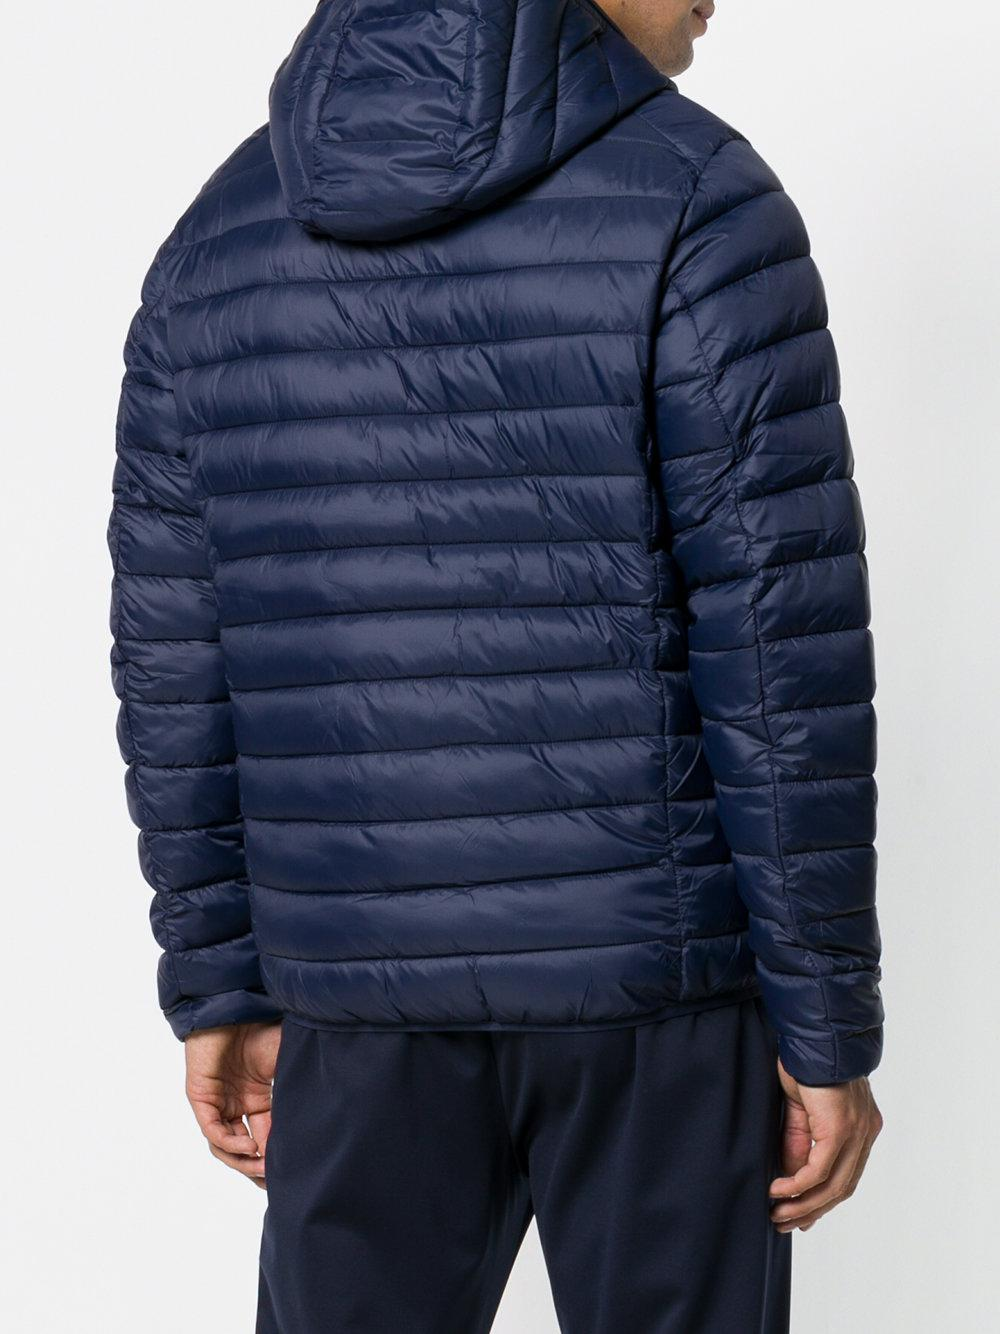 Save The Duck Synthetic D3065m Giga7 Padded Jacket in Blue for Men